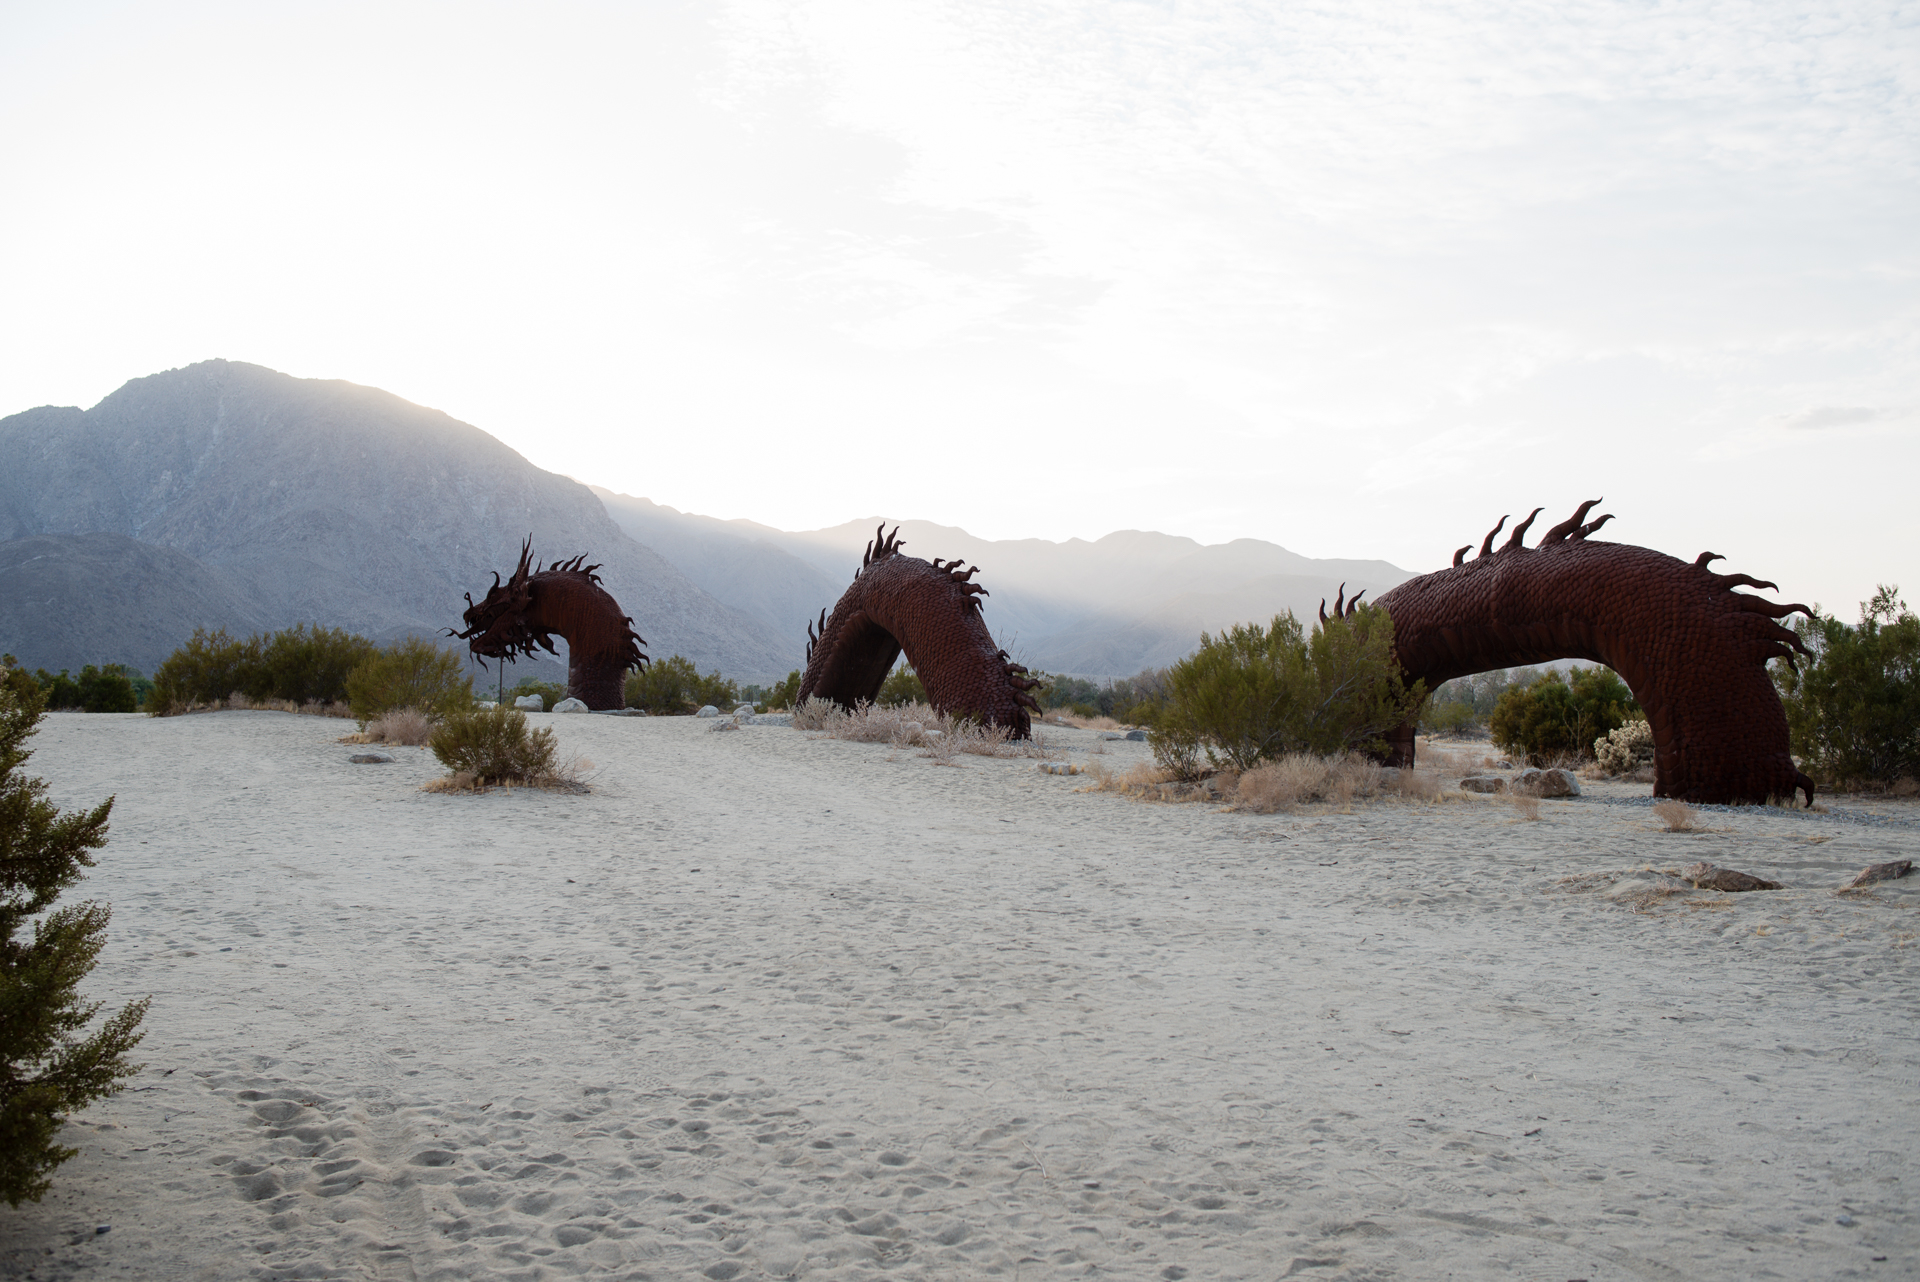 Tiffany Luong photographs Ricardo Brecedas giant serpent sculpture in the desert for Westways